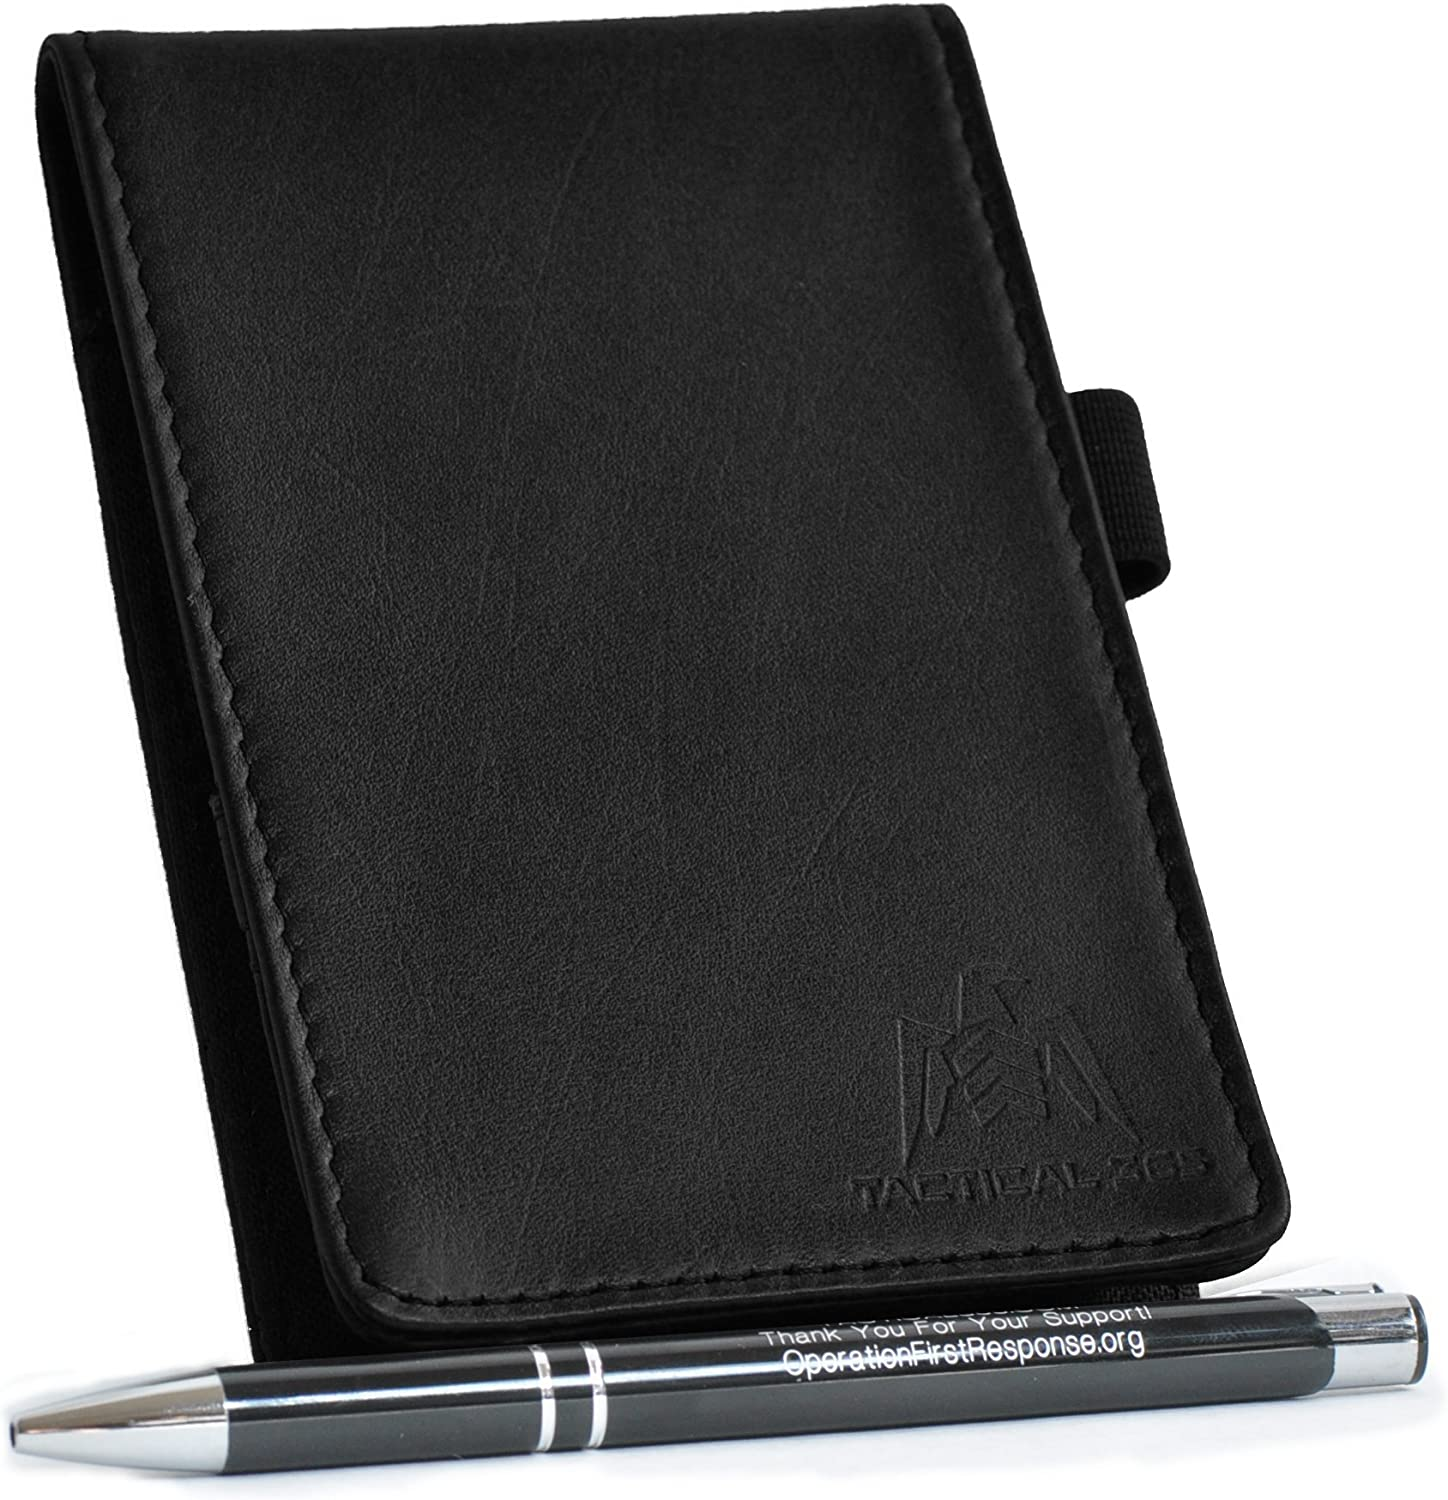 Tactical 365 Operation First Response Deluxe Leather Memo Pad Holder - Black